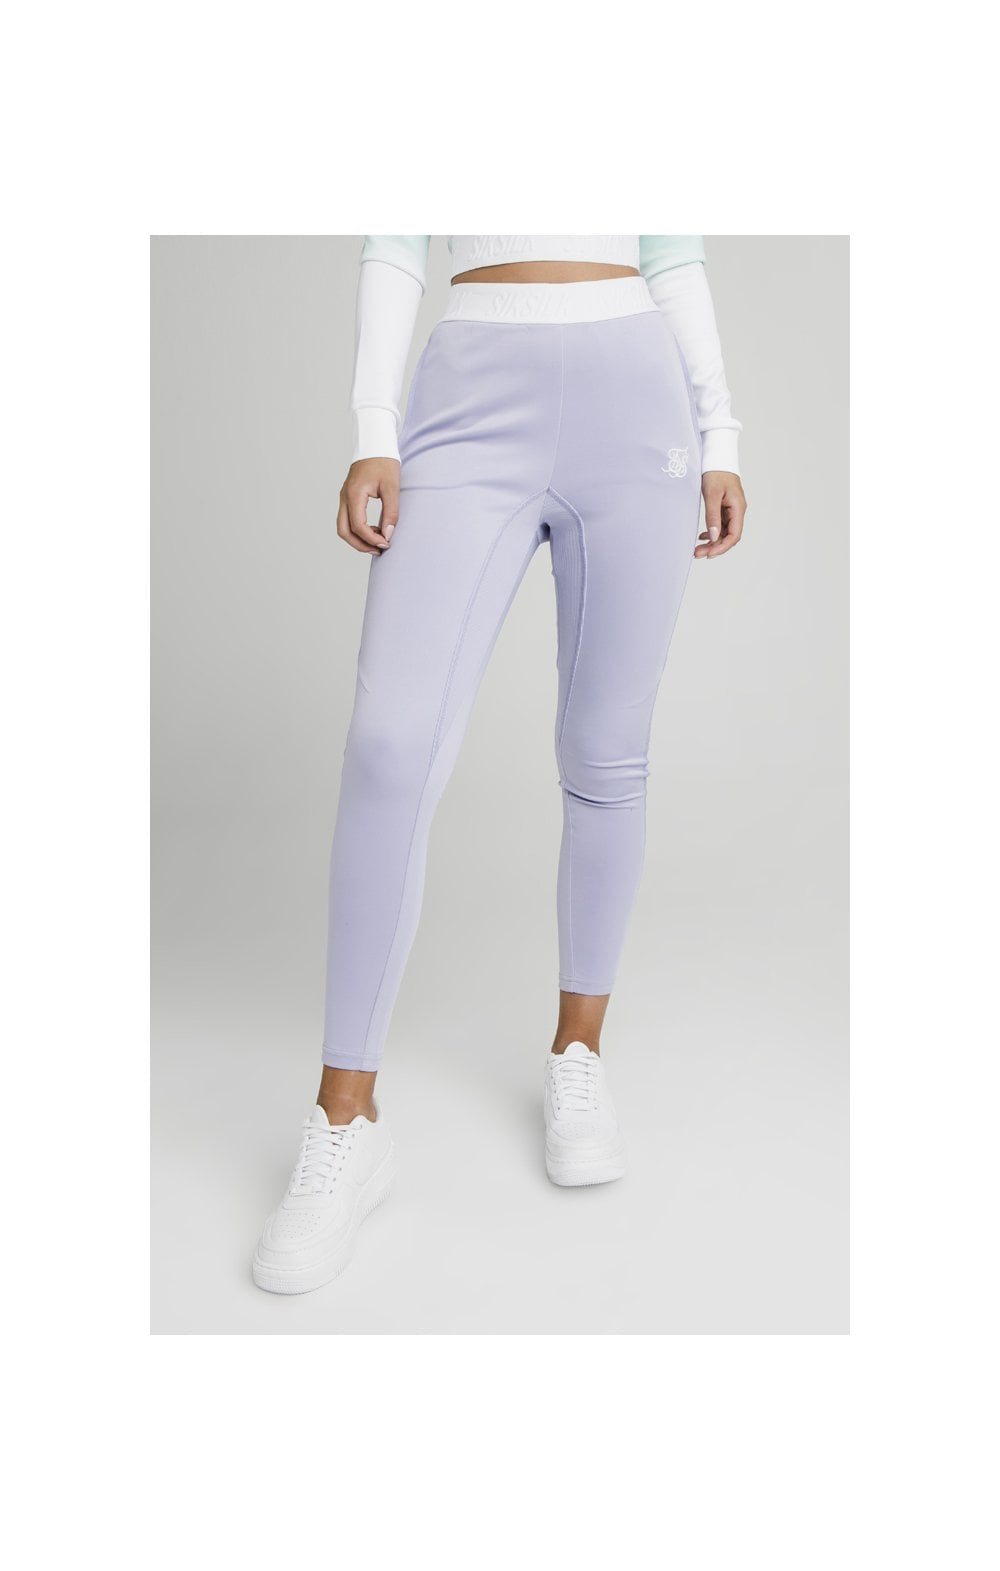 Load image into Gallery viewer, SikSilk Lilac Haze Track Pants - Lilac